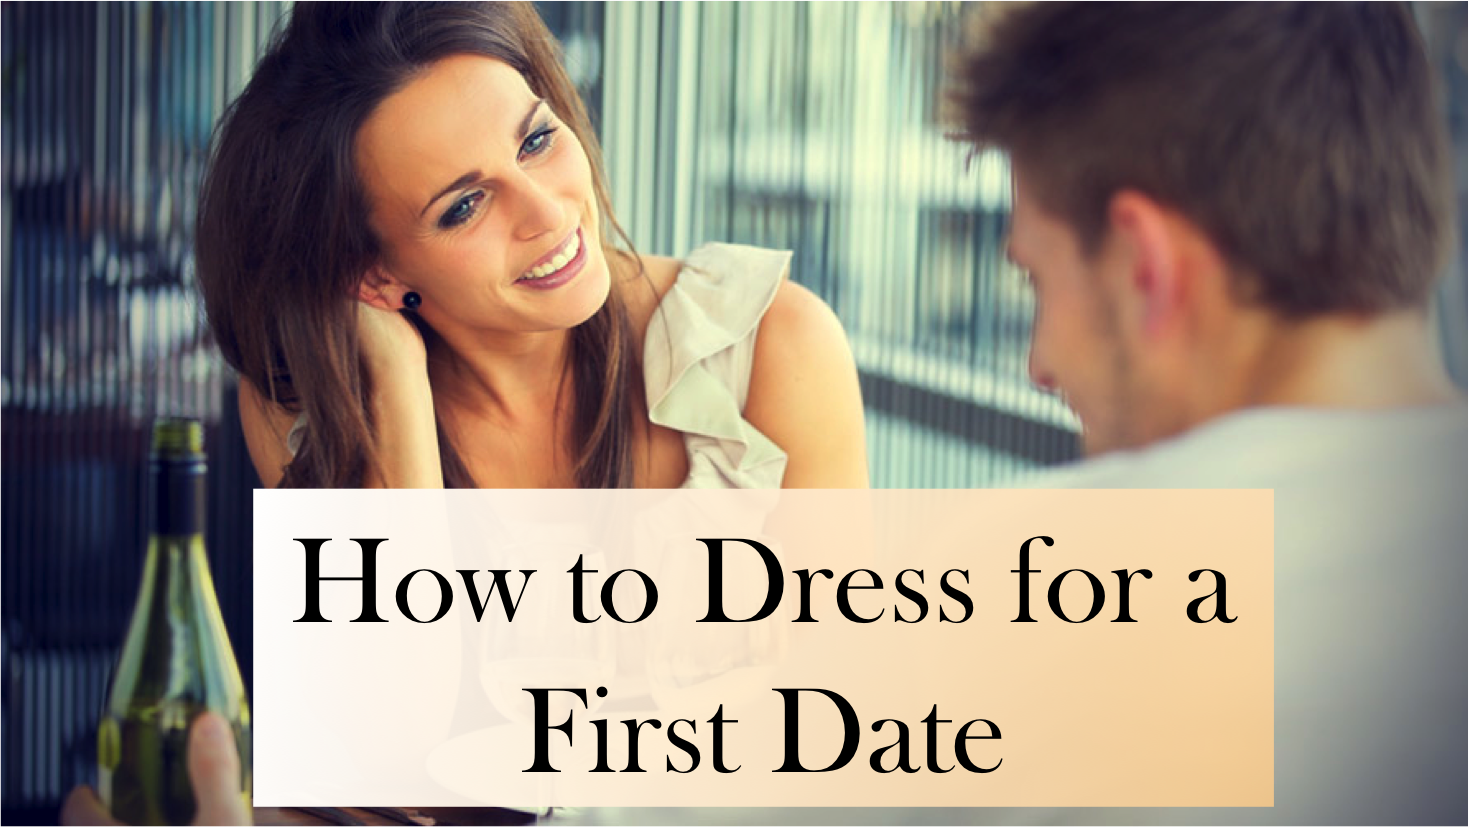 How to Dress for a First Date